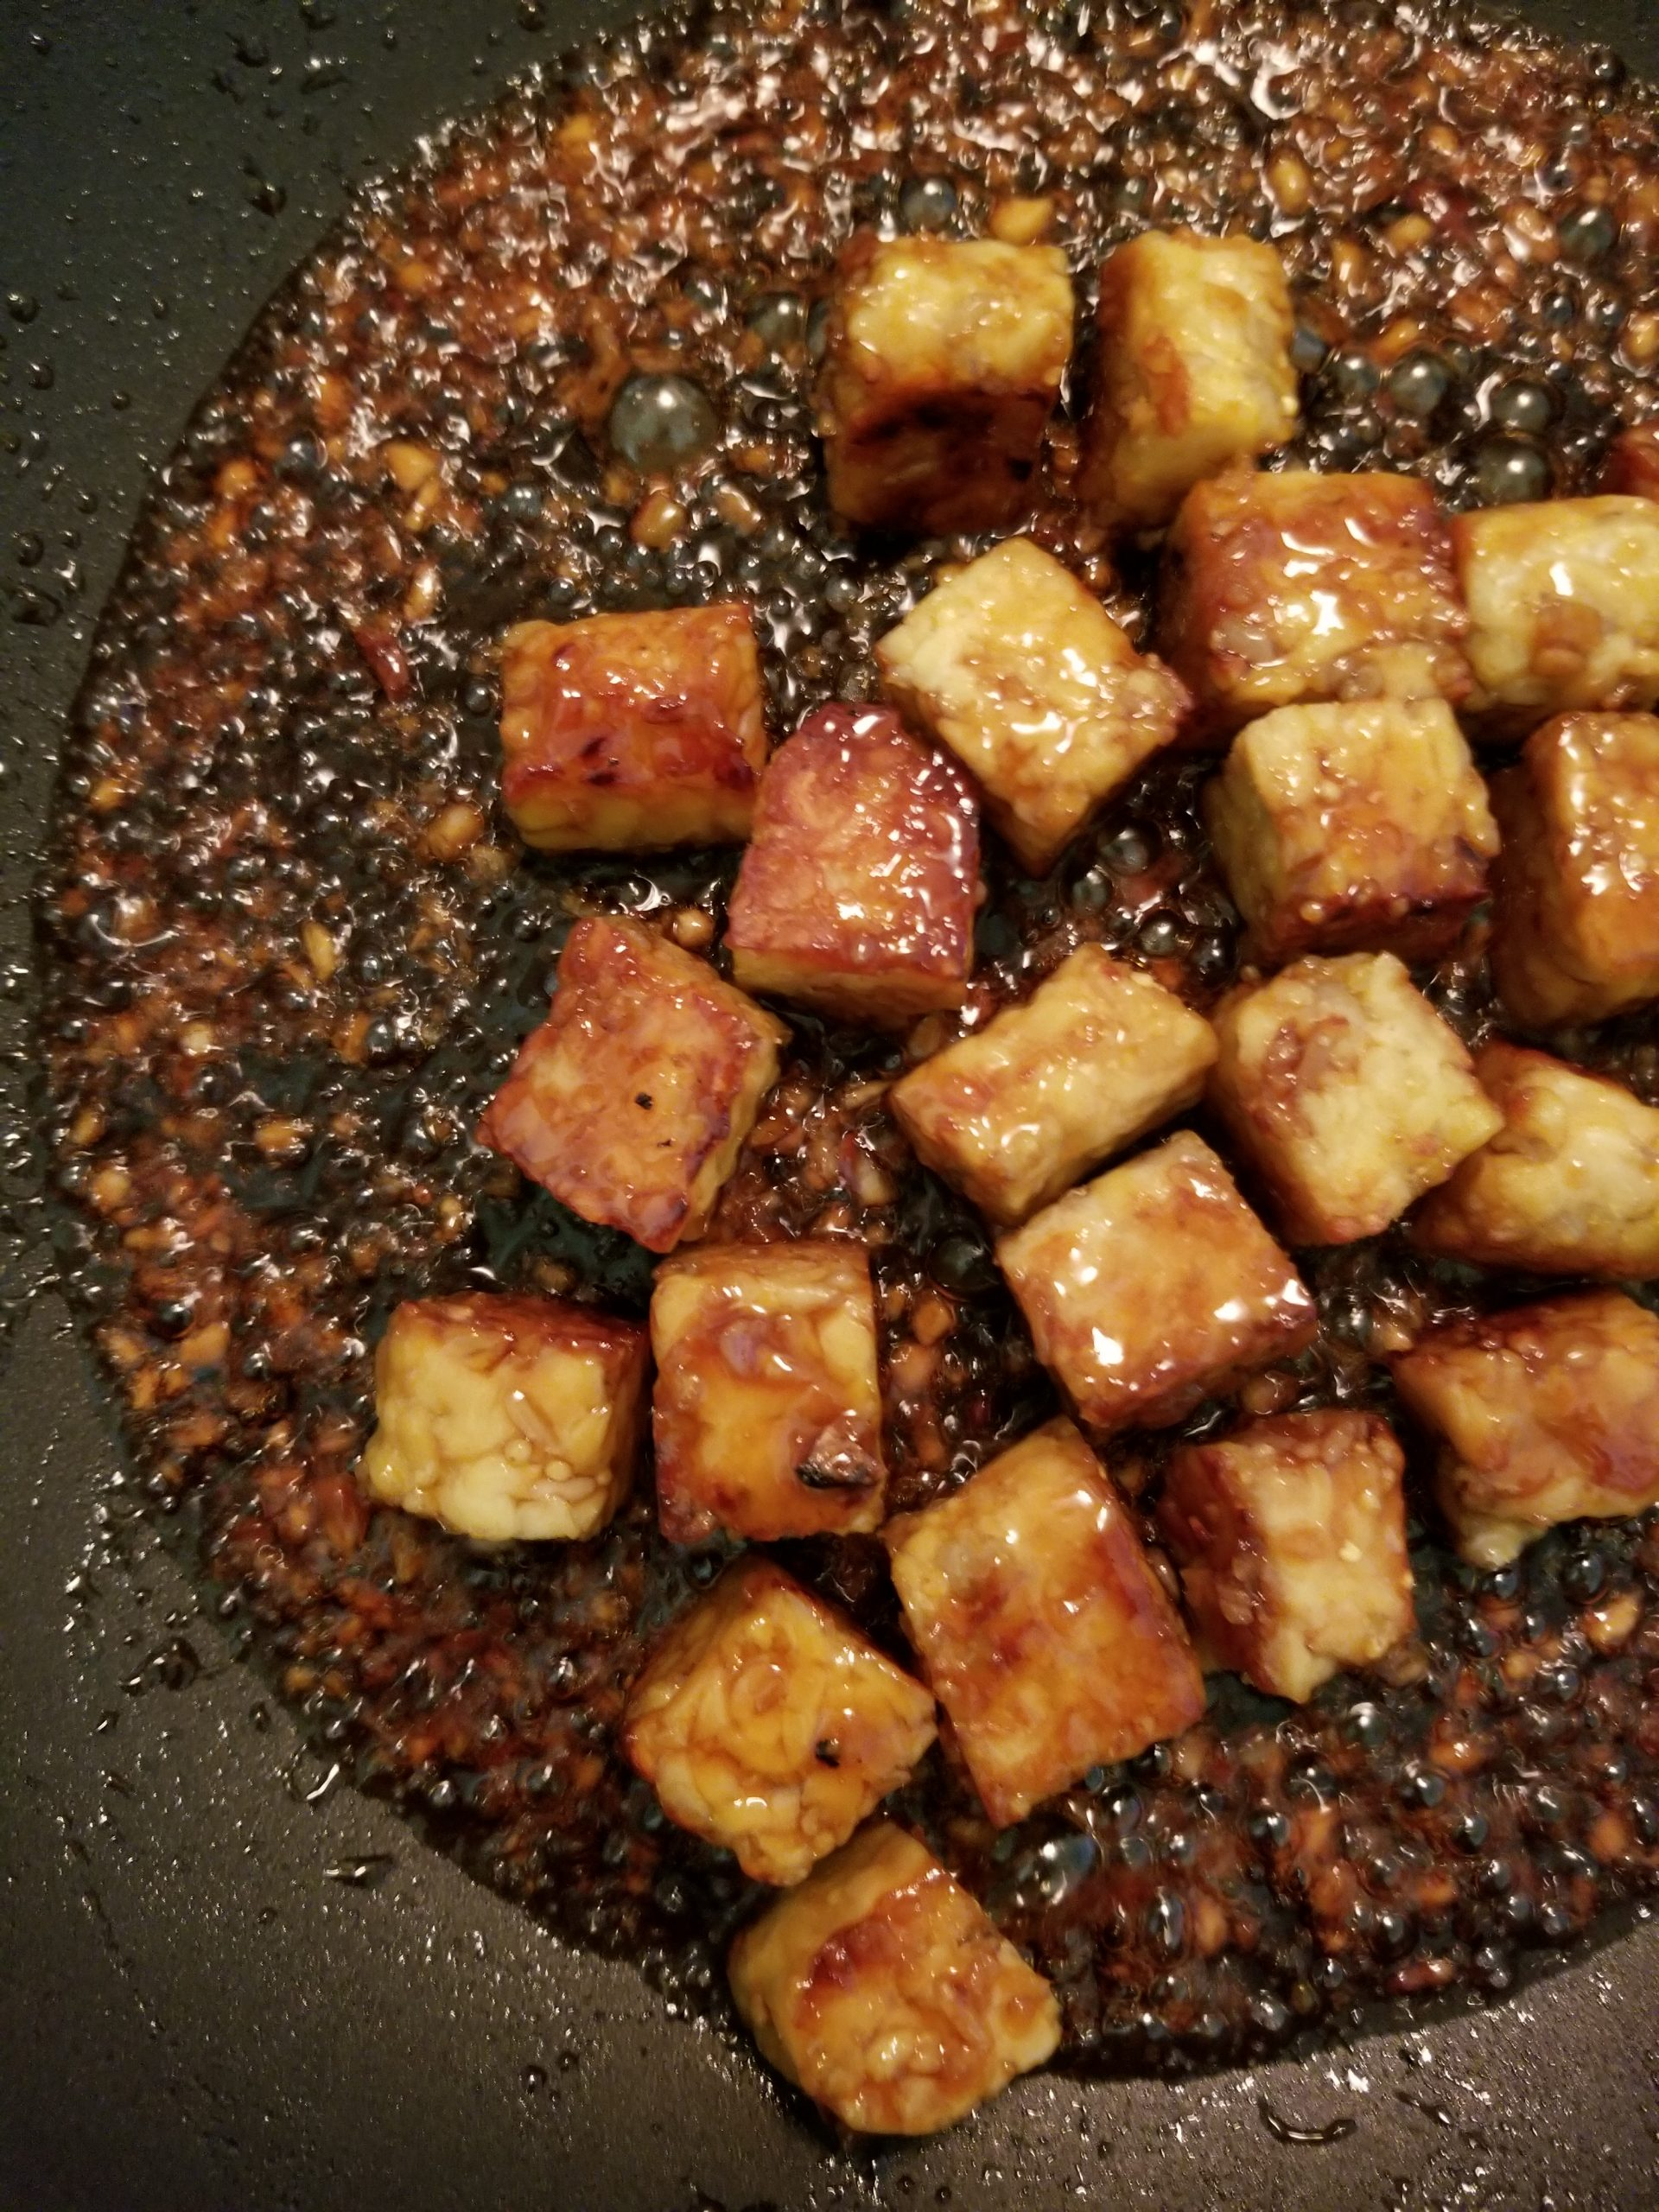 Chopped tempeh cubes stir-fried and cooked in a honey garlic sauce